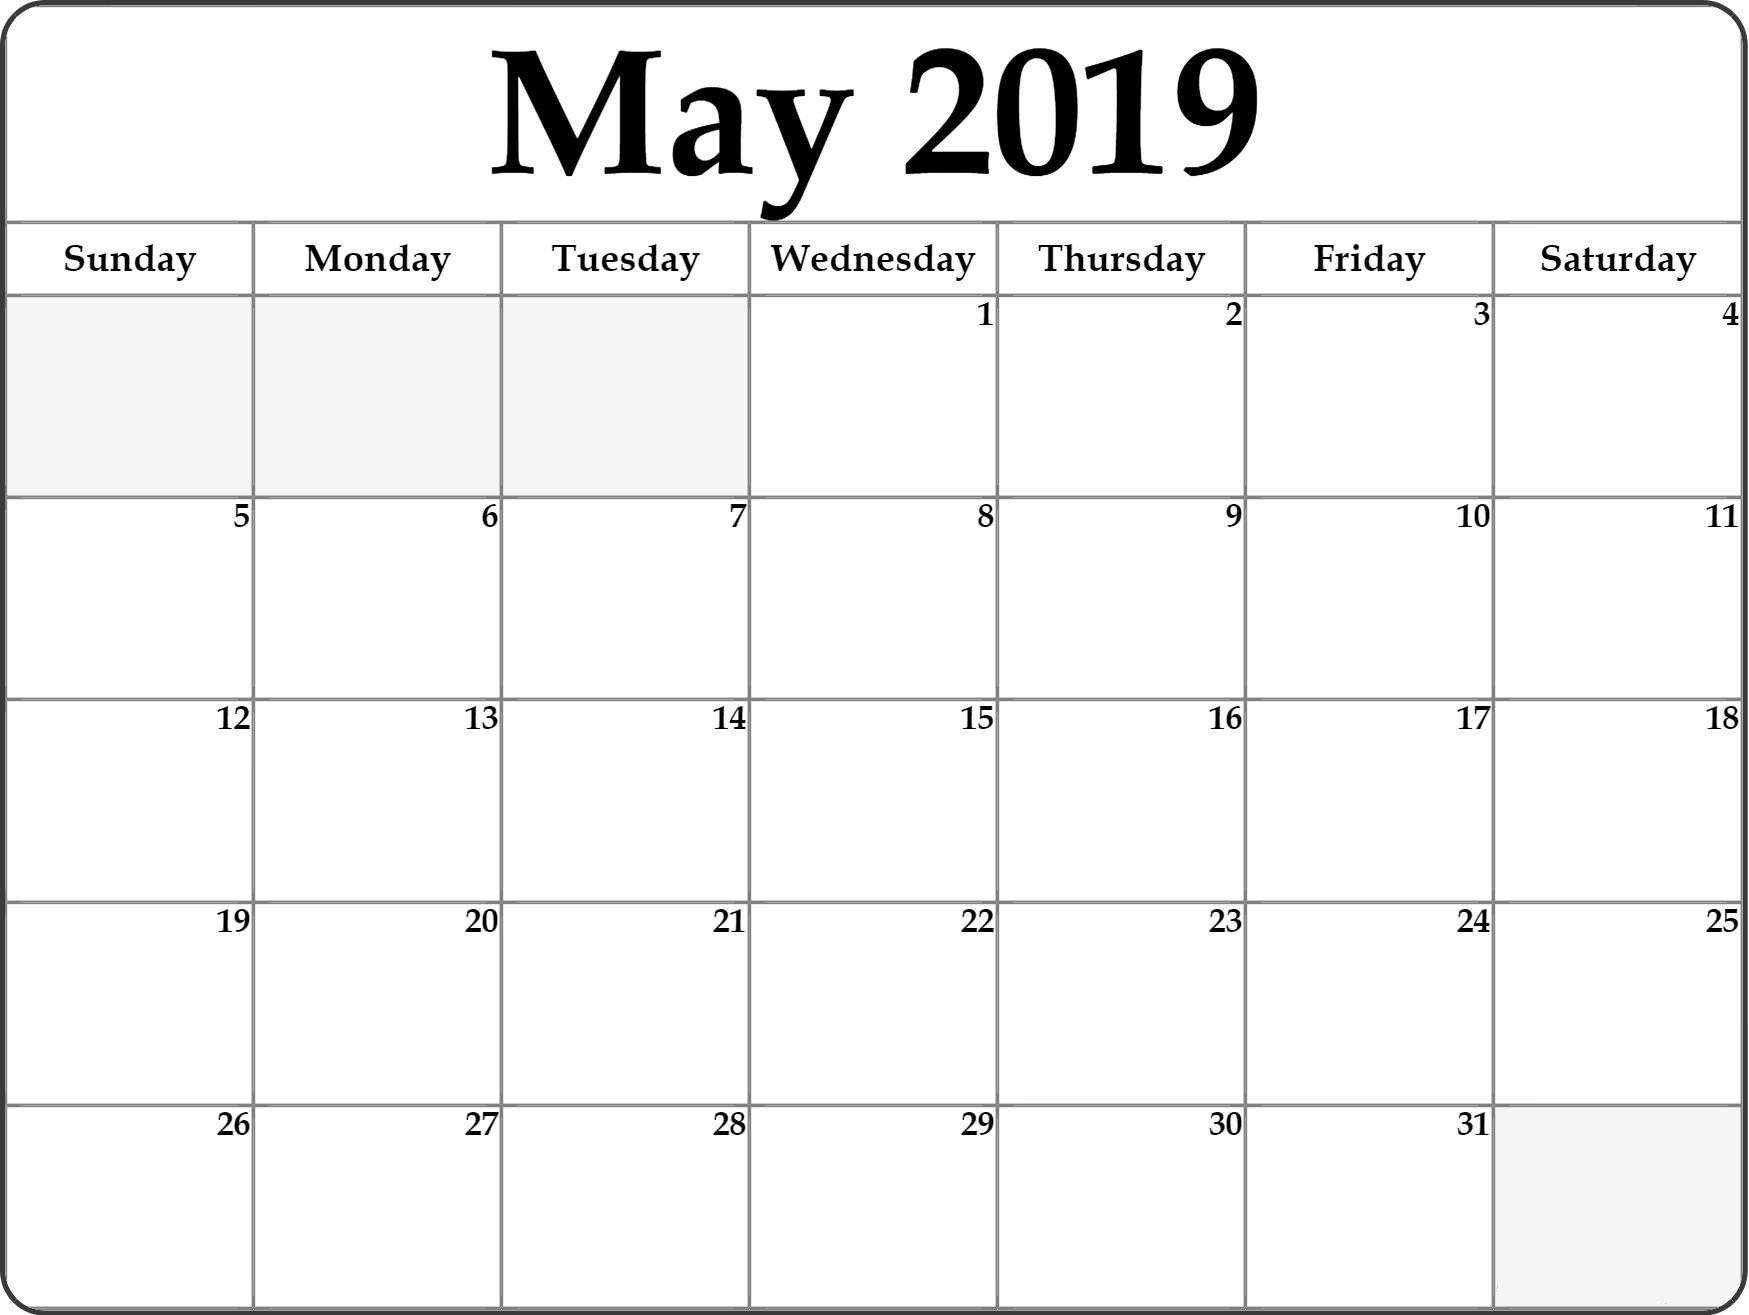 May 2019 Blank Calendar Pdf And Jpg Template - Free Printable